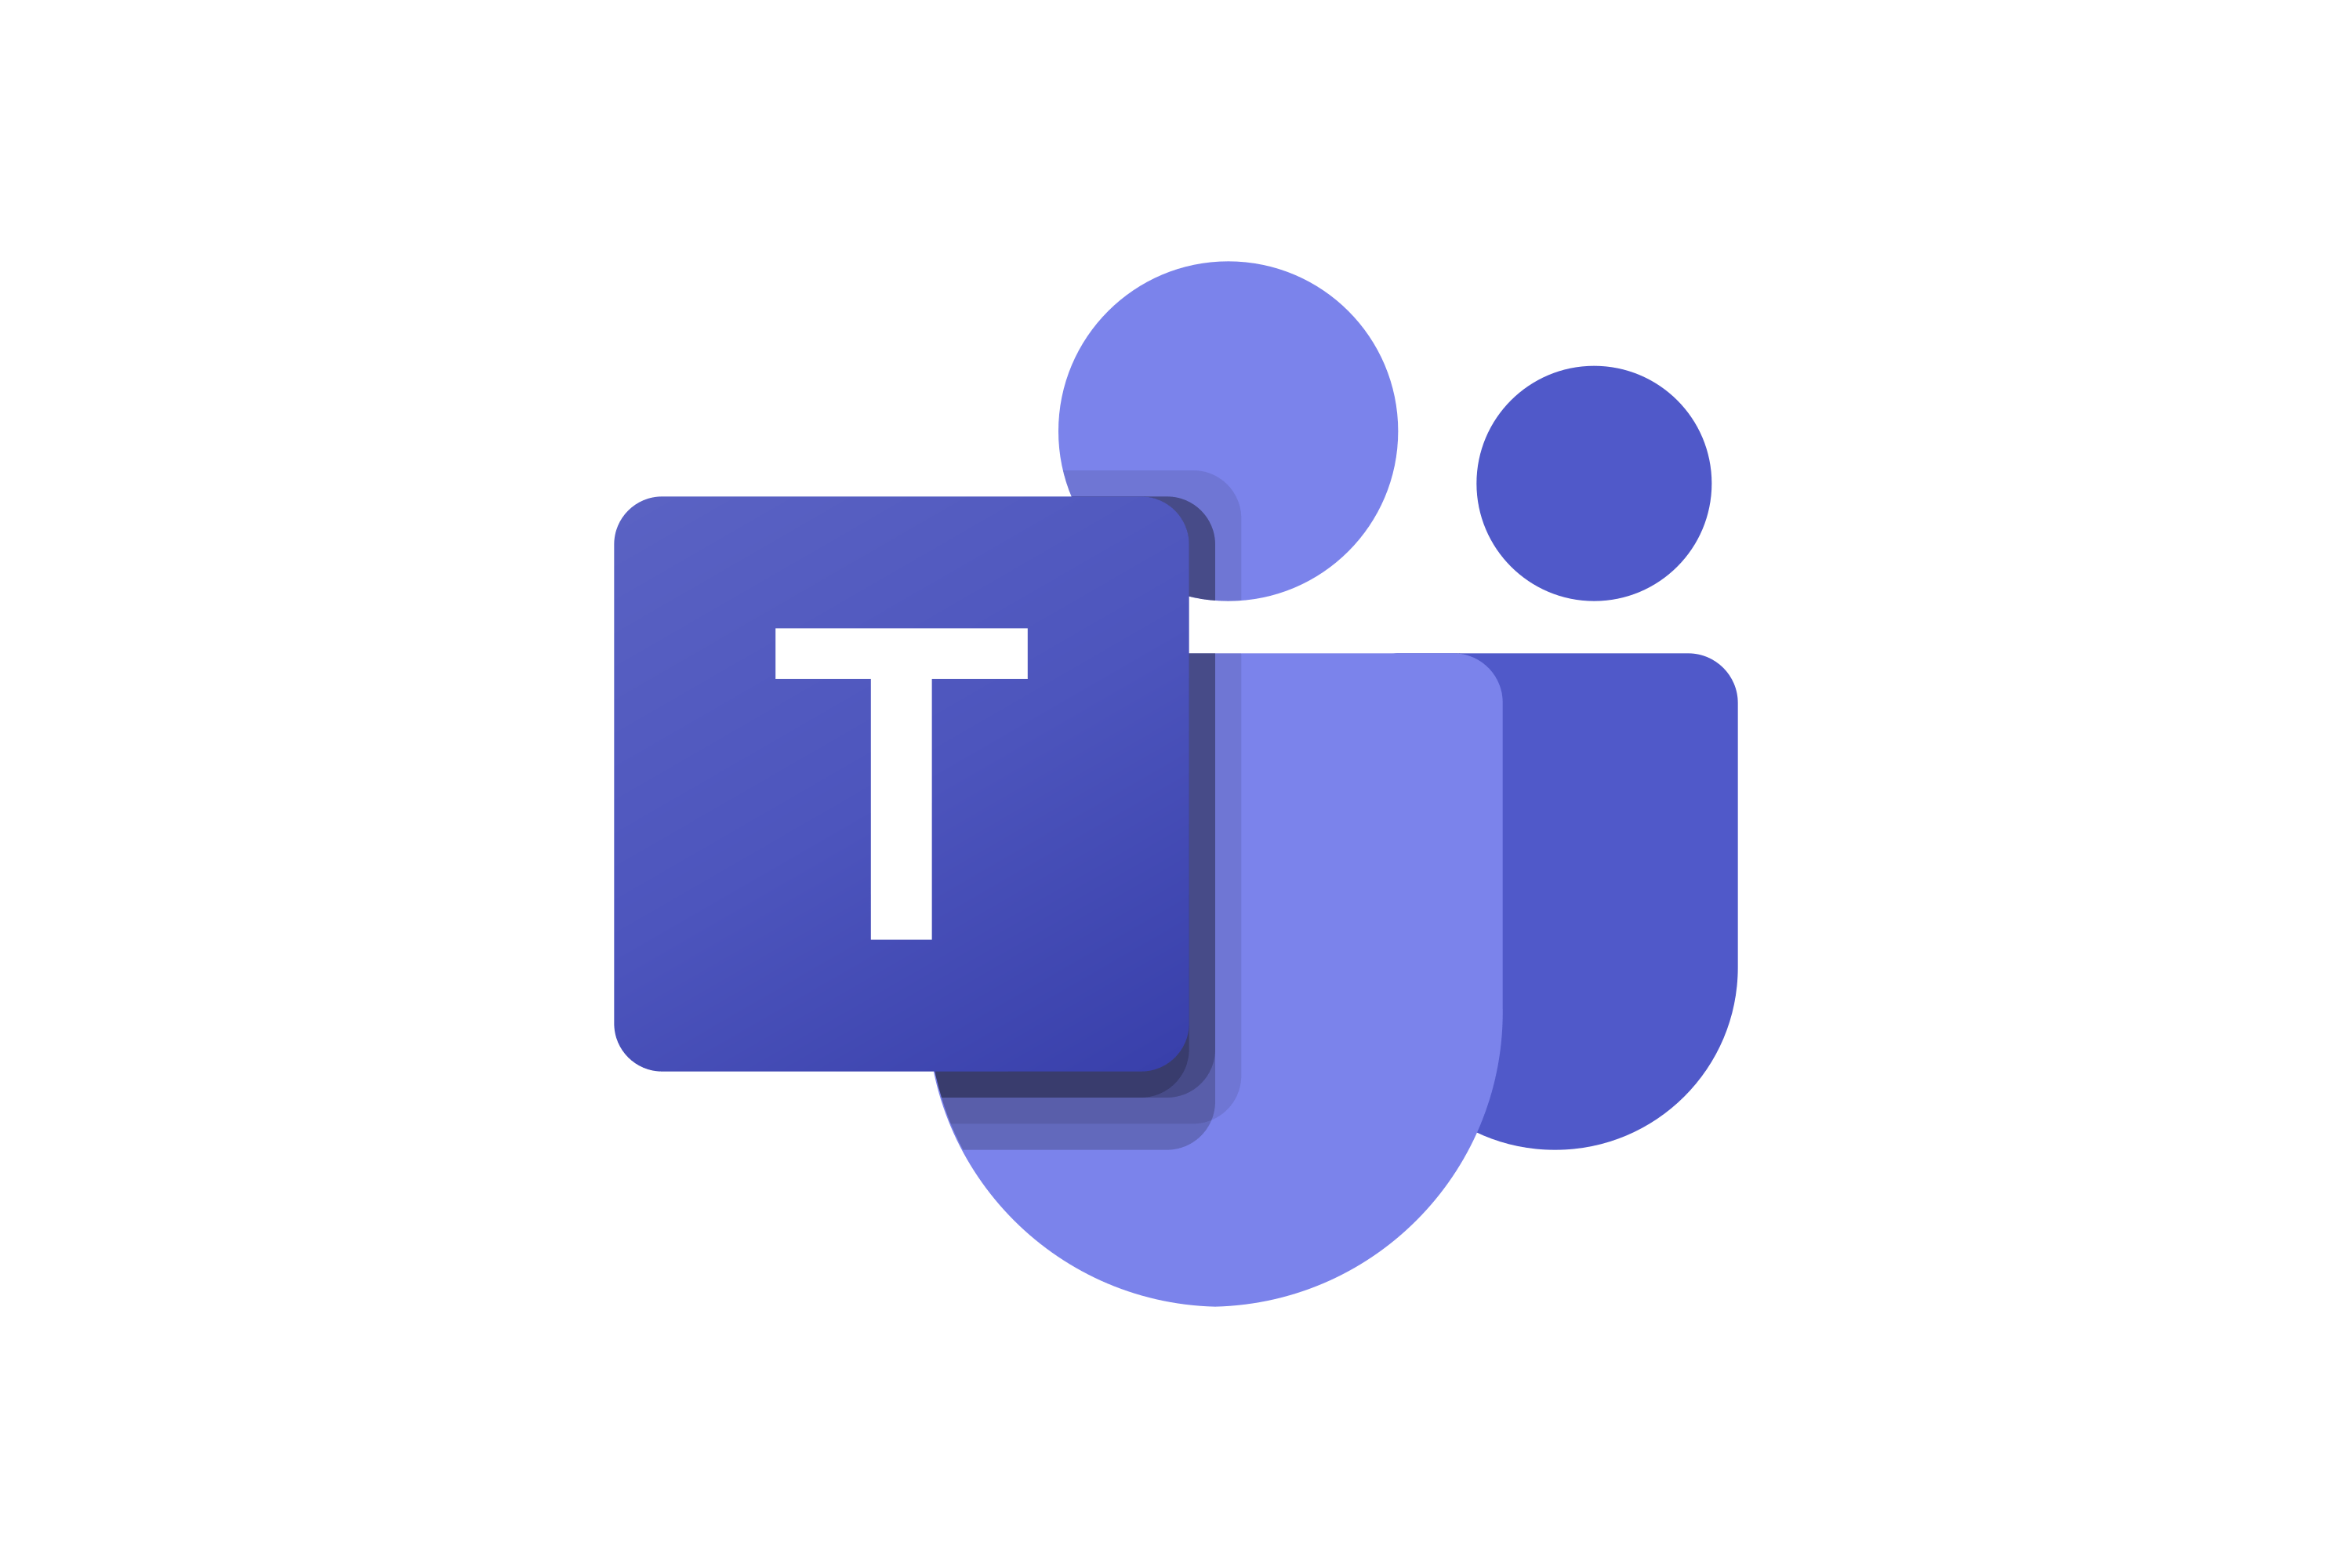 Download Microsoft Teams Logo in SVG Vector or PNG File Format ...